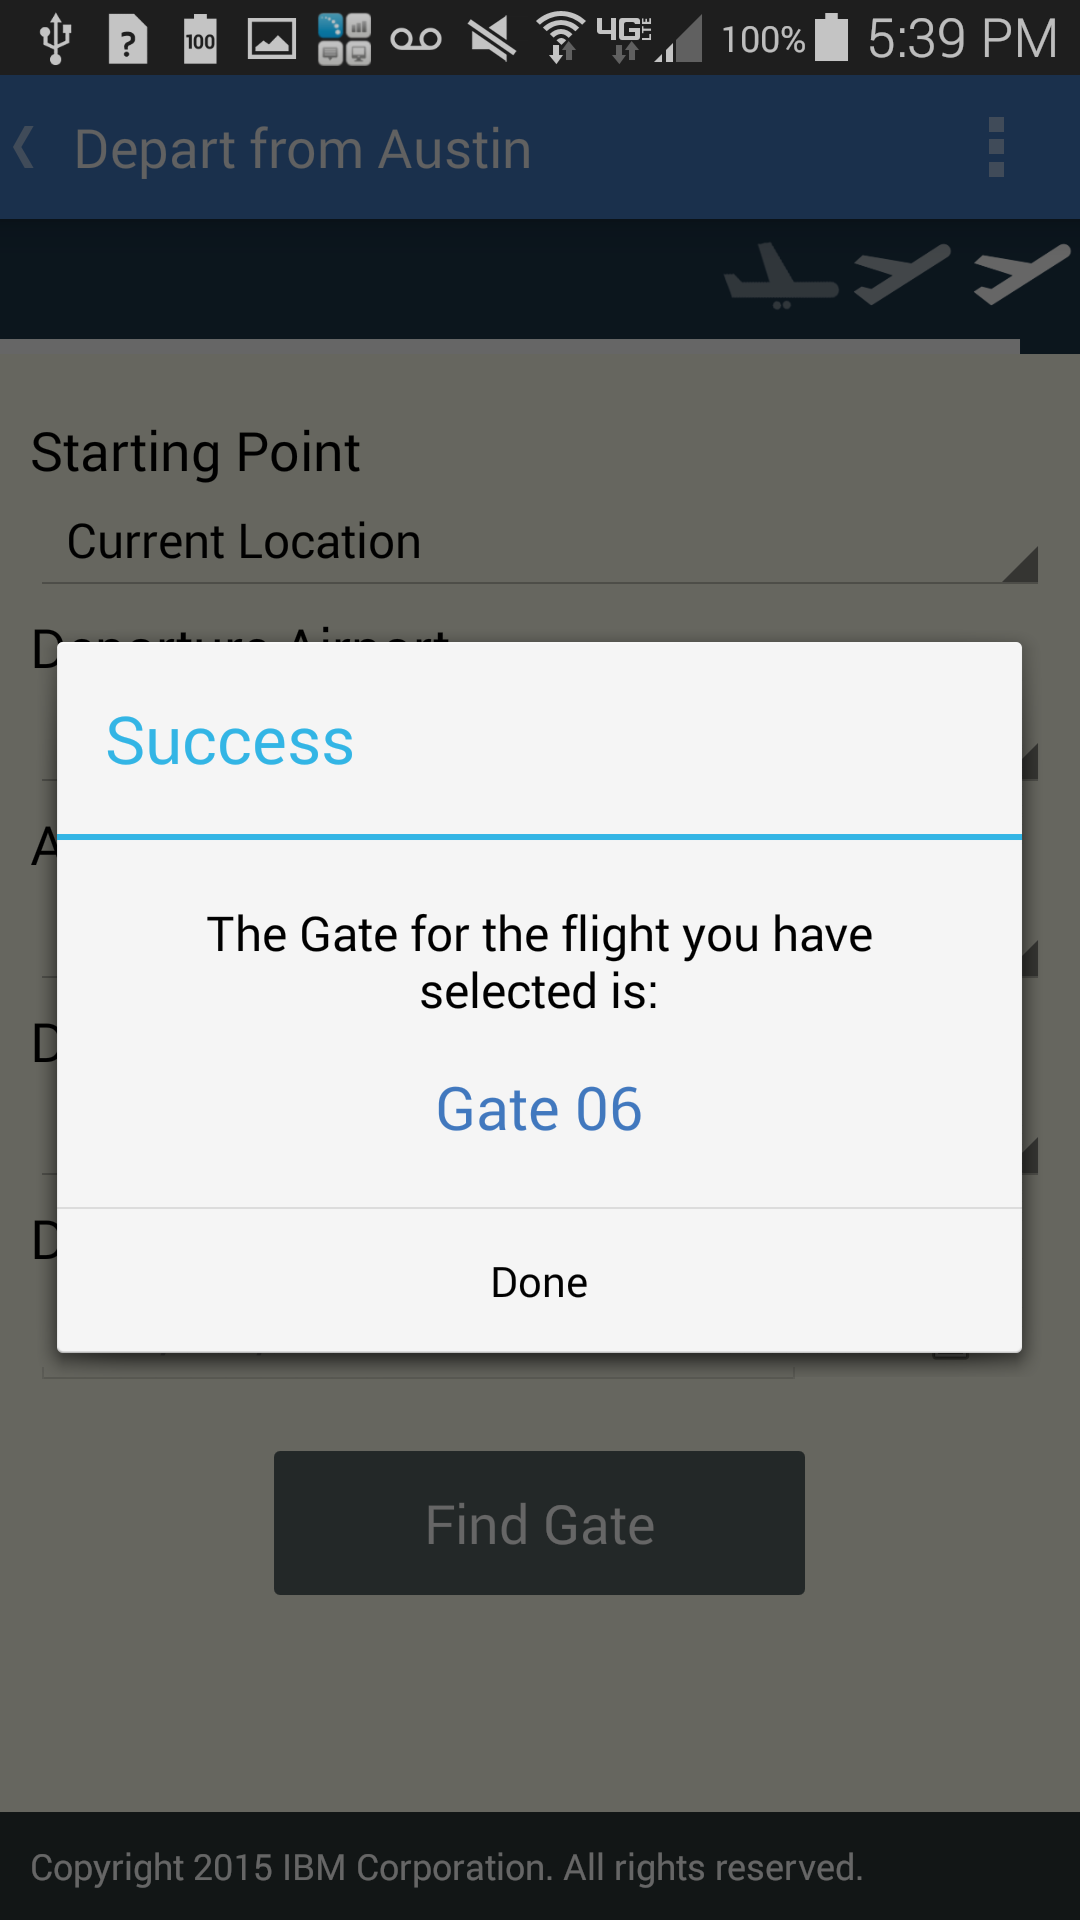 Screenshot of found gate from IBM Accessible Airport App